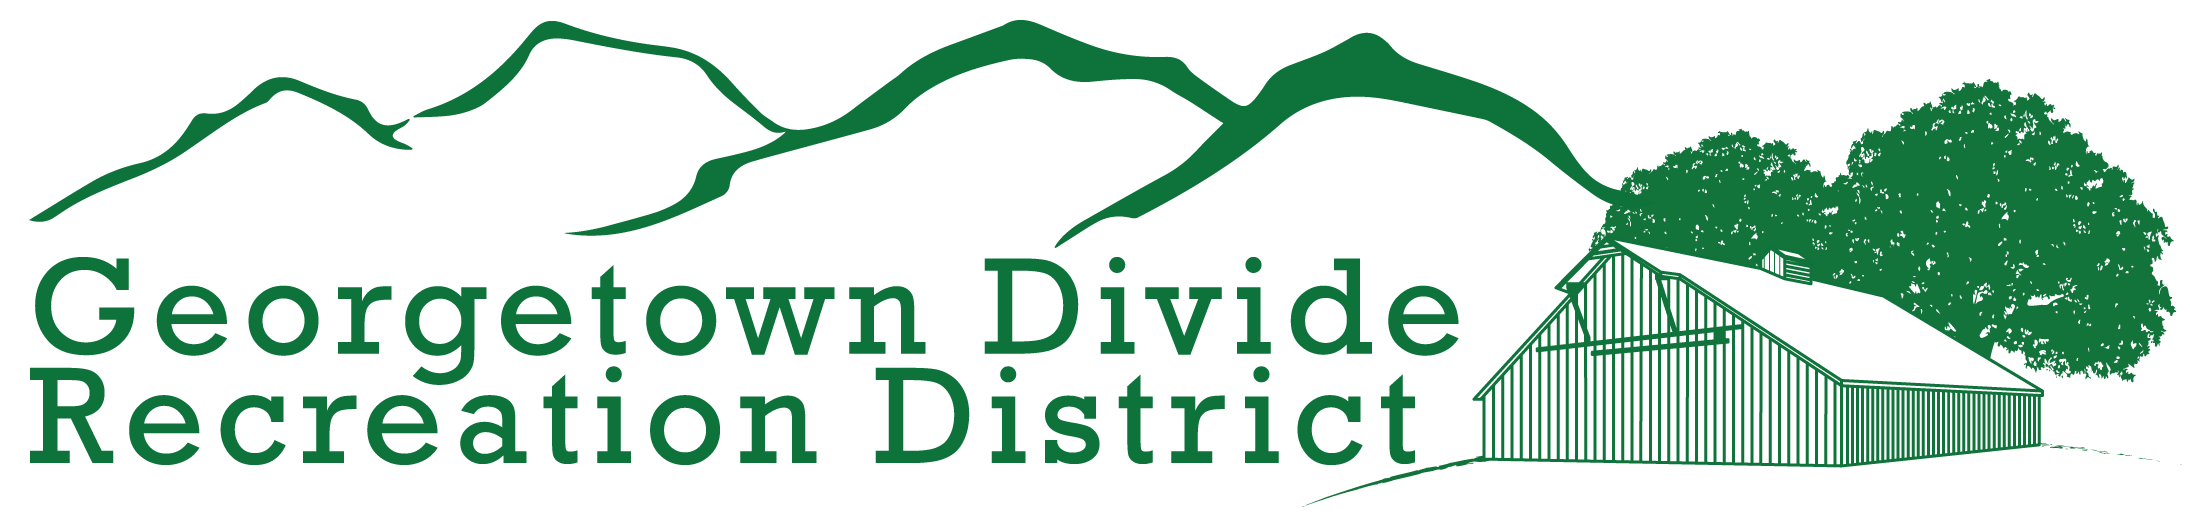 GEORGETOWN DIVIDE RECREATION DISTRICT